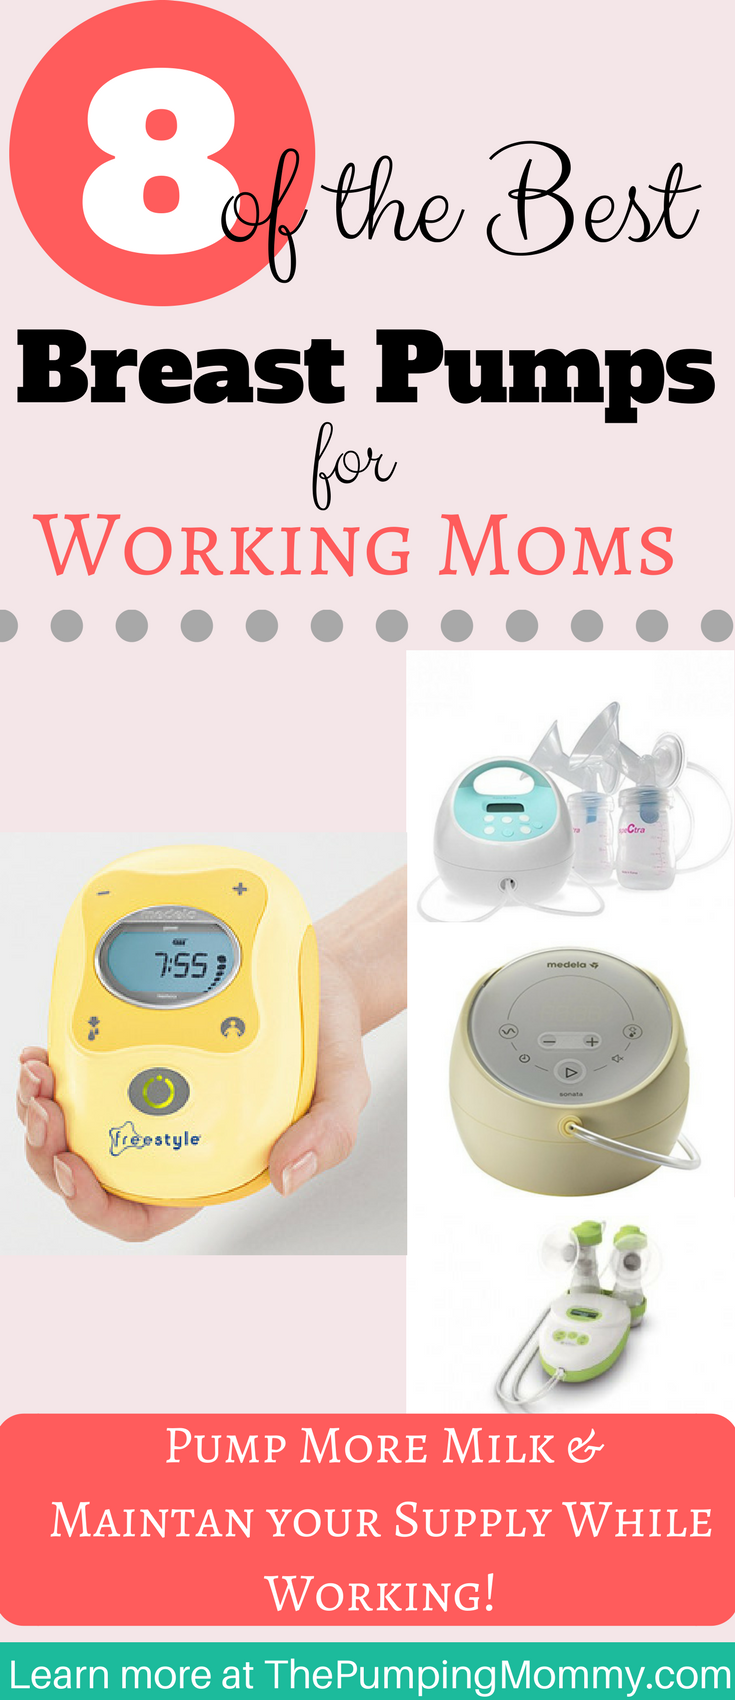 394c7be245b 8 of The Best Breast Pumps for Working Moms What is the best breast pump  for working moms  What are some things to look for when buying a pump  before going ...